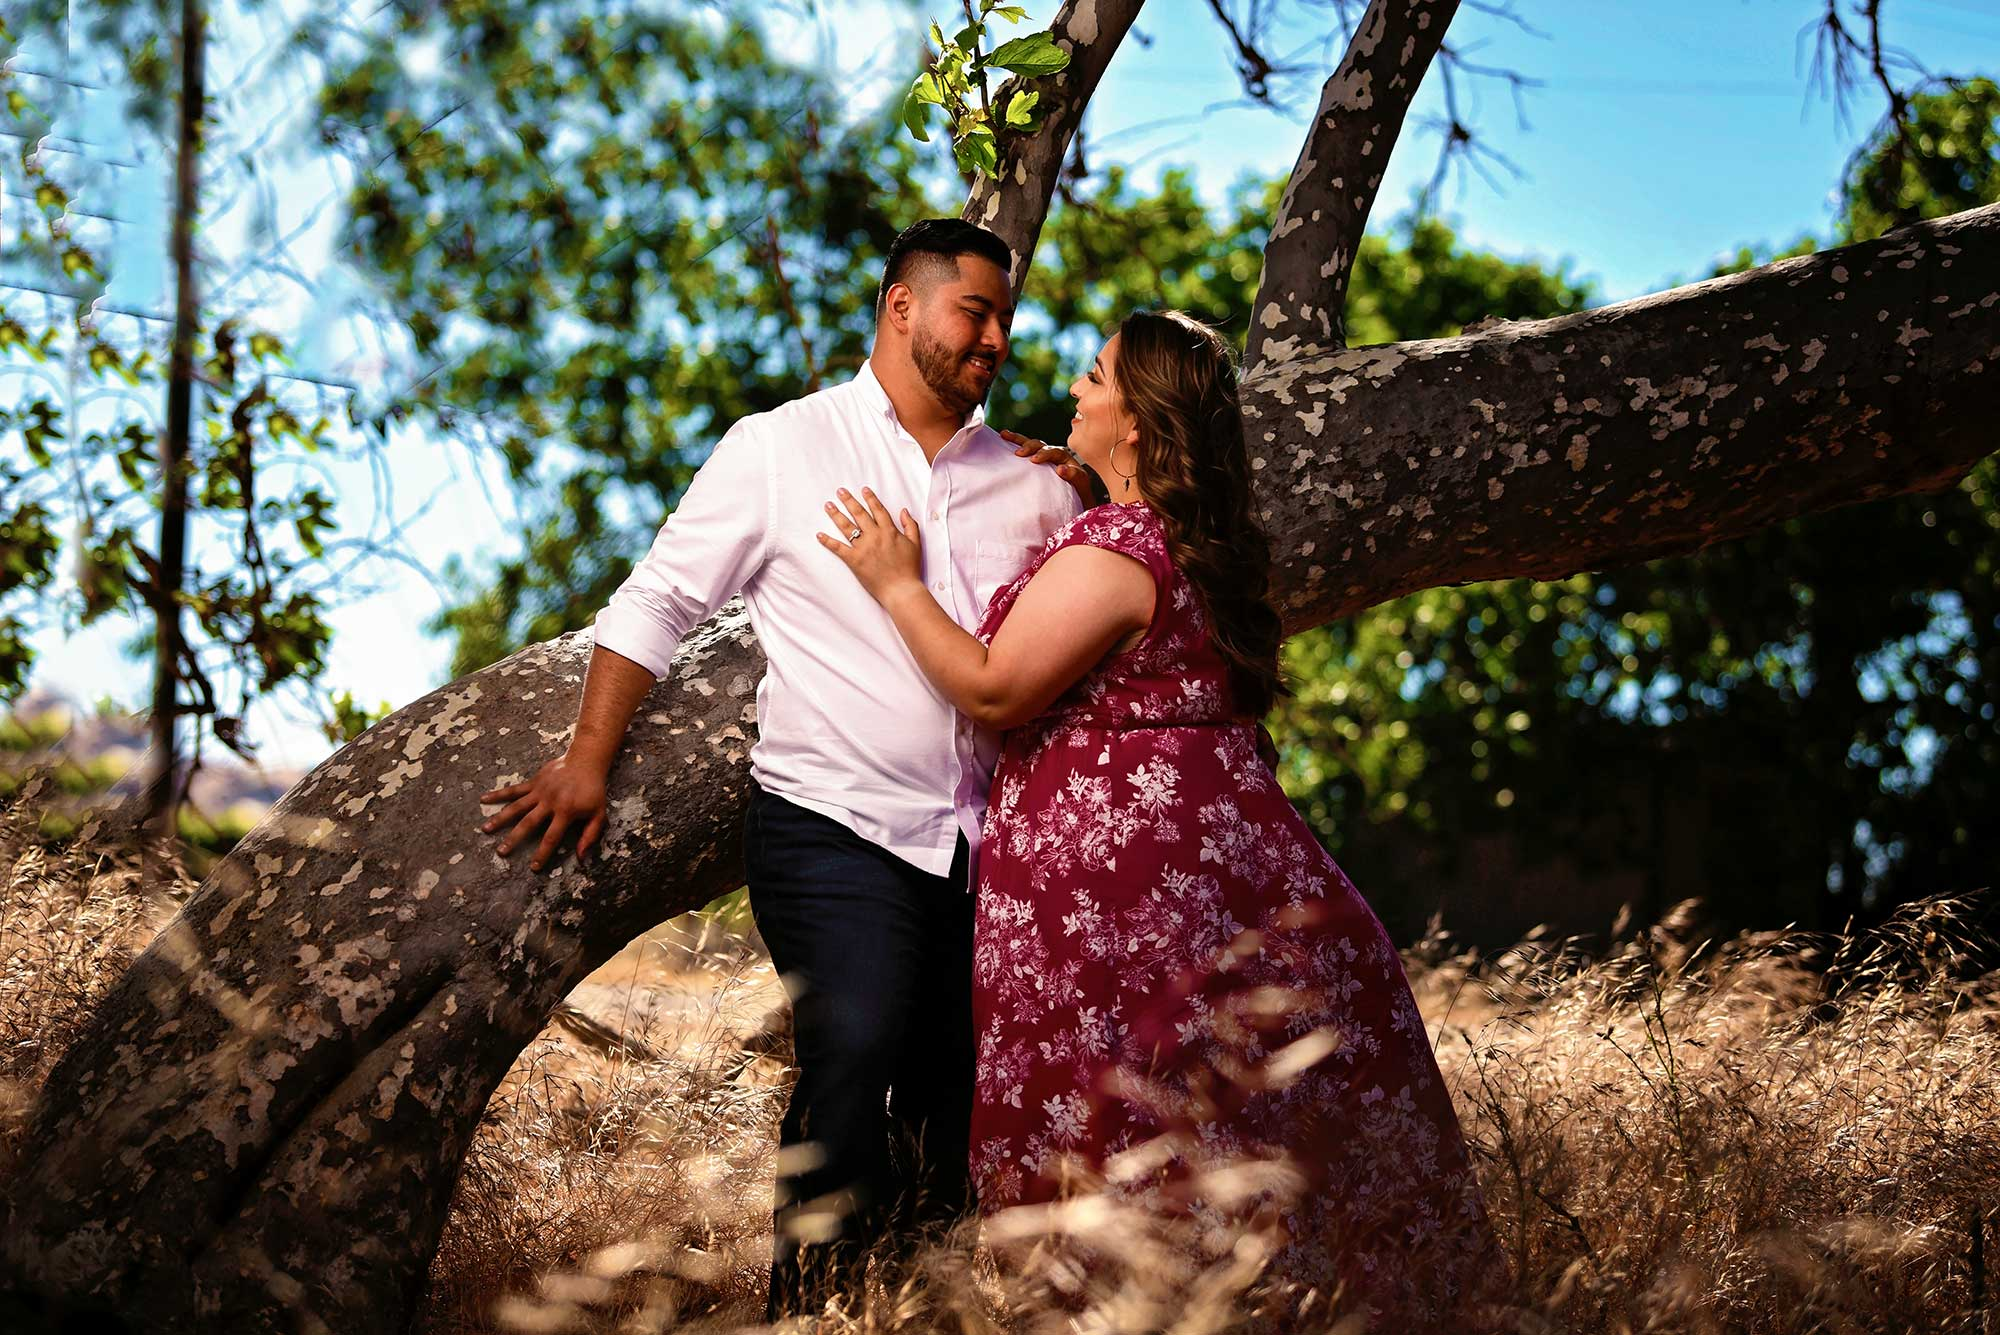 https://bworthyphotography.smugmug.com/BW-Website-Engagement-Session/Sanchez-Engagement-Session